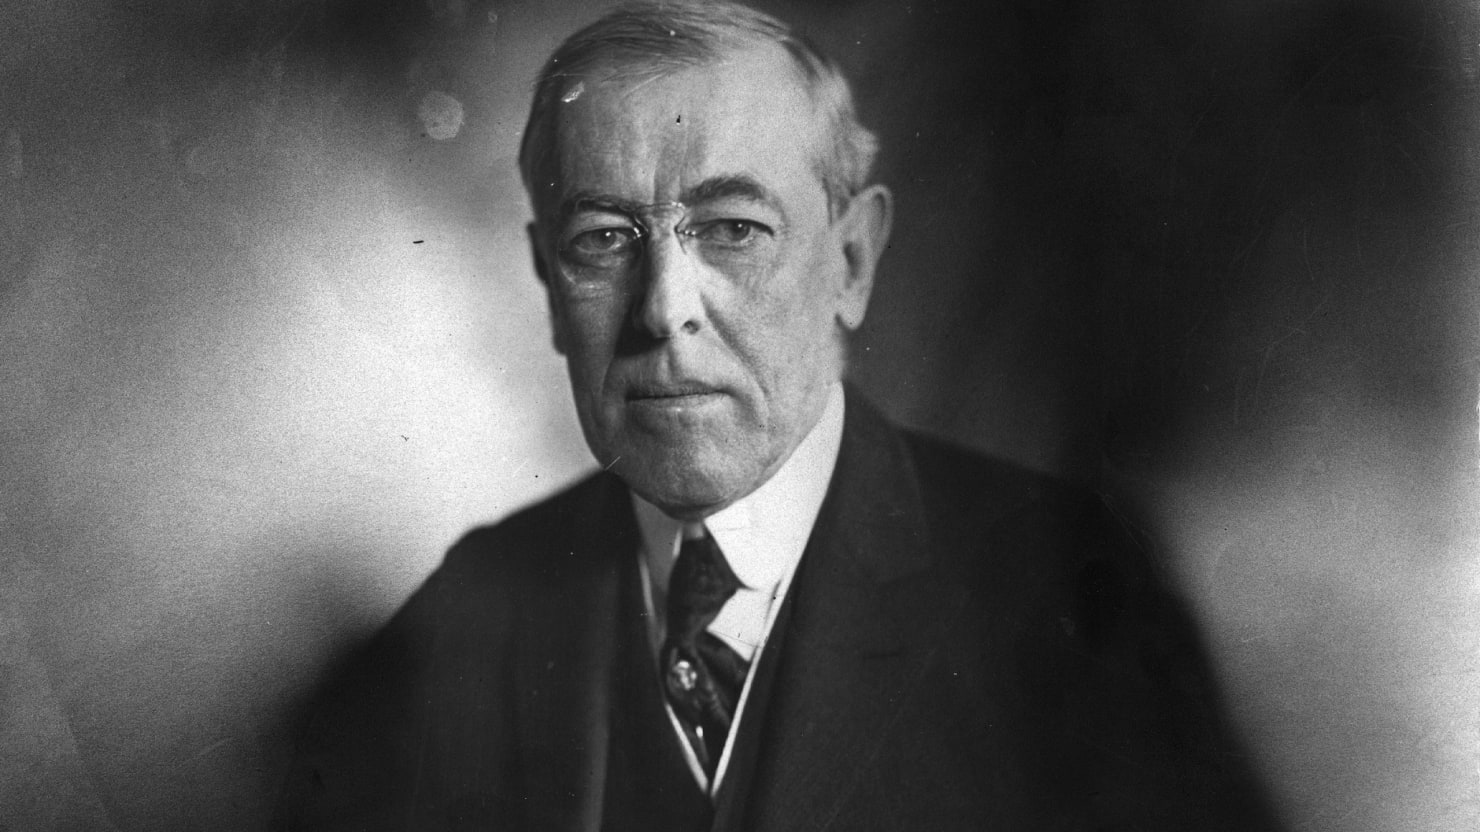 an examination of the greatest american president of all time thomas woodrow wilson Watch video  woodrow wilson, who ranked sixth in the 2000 survey, dropped to 11th, as the post-world war i map of the middle east that wilson helped to draw crumbled into anarchy, and historians placed new emphasis on his atrocious civil rights record.